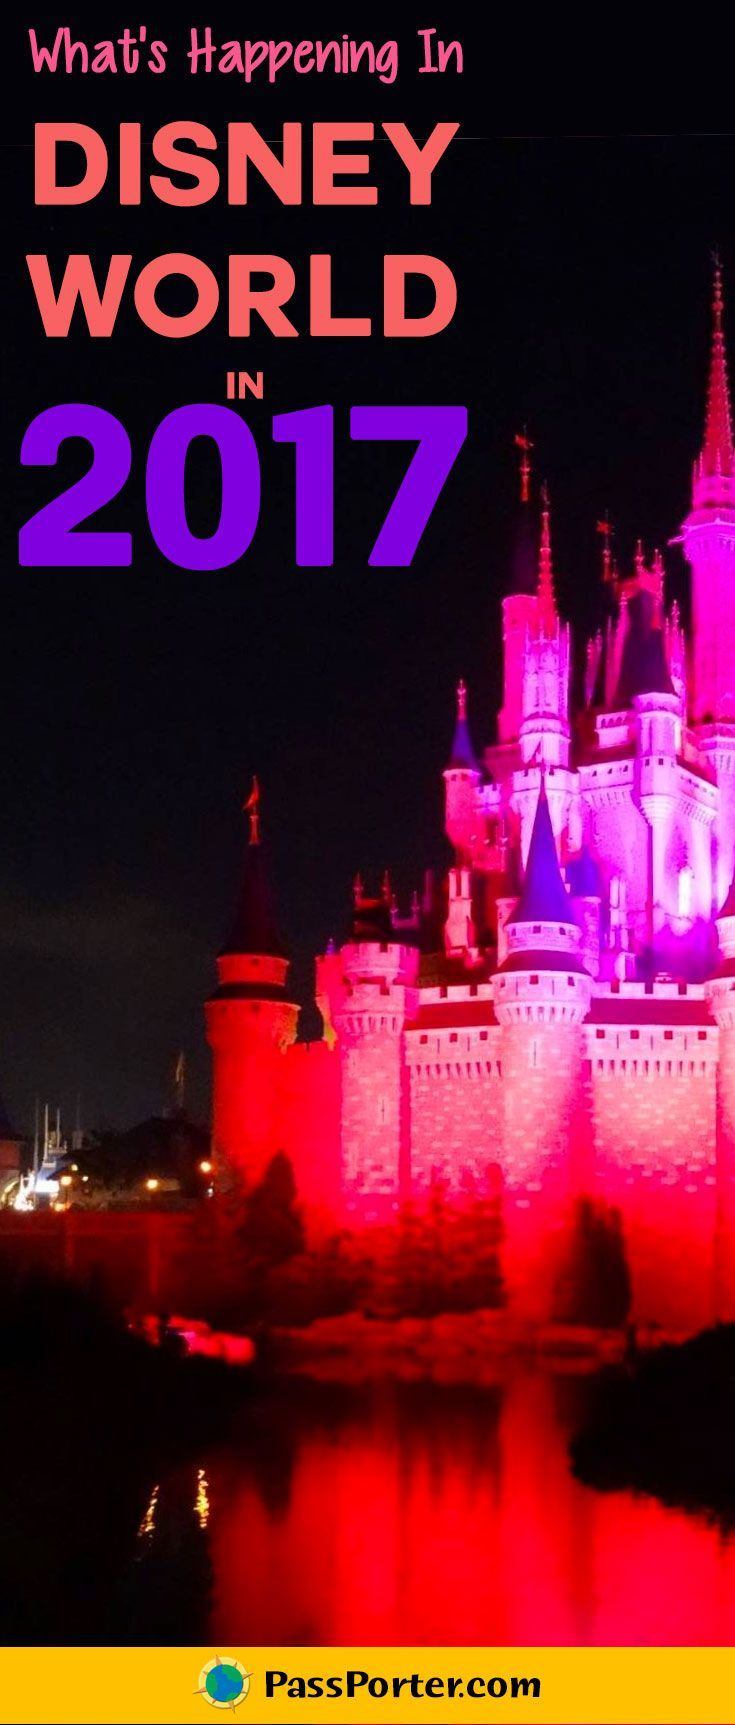 Learn What Passporter S Cheryl Pendry Is Looking Forward To In 2017 Walt Disney World Http Passp Disney World Disney World Planning Disney World Vacation